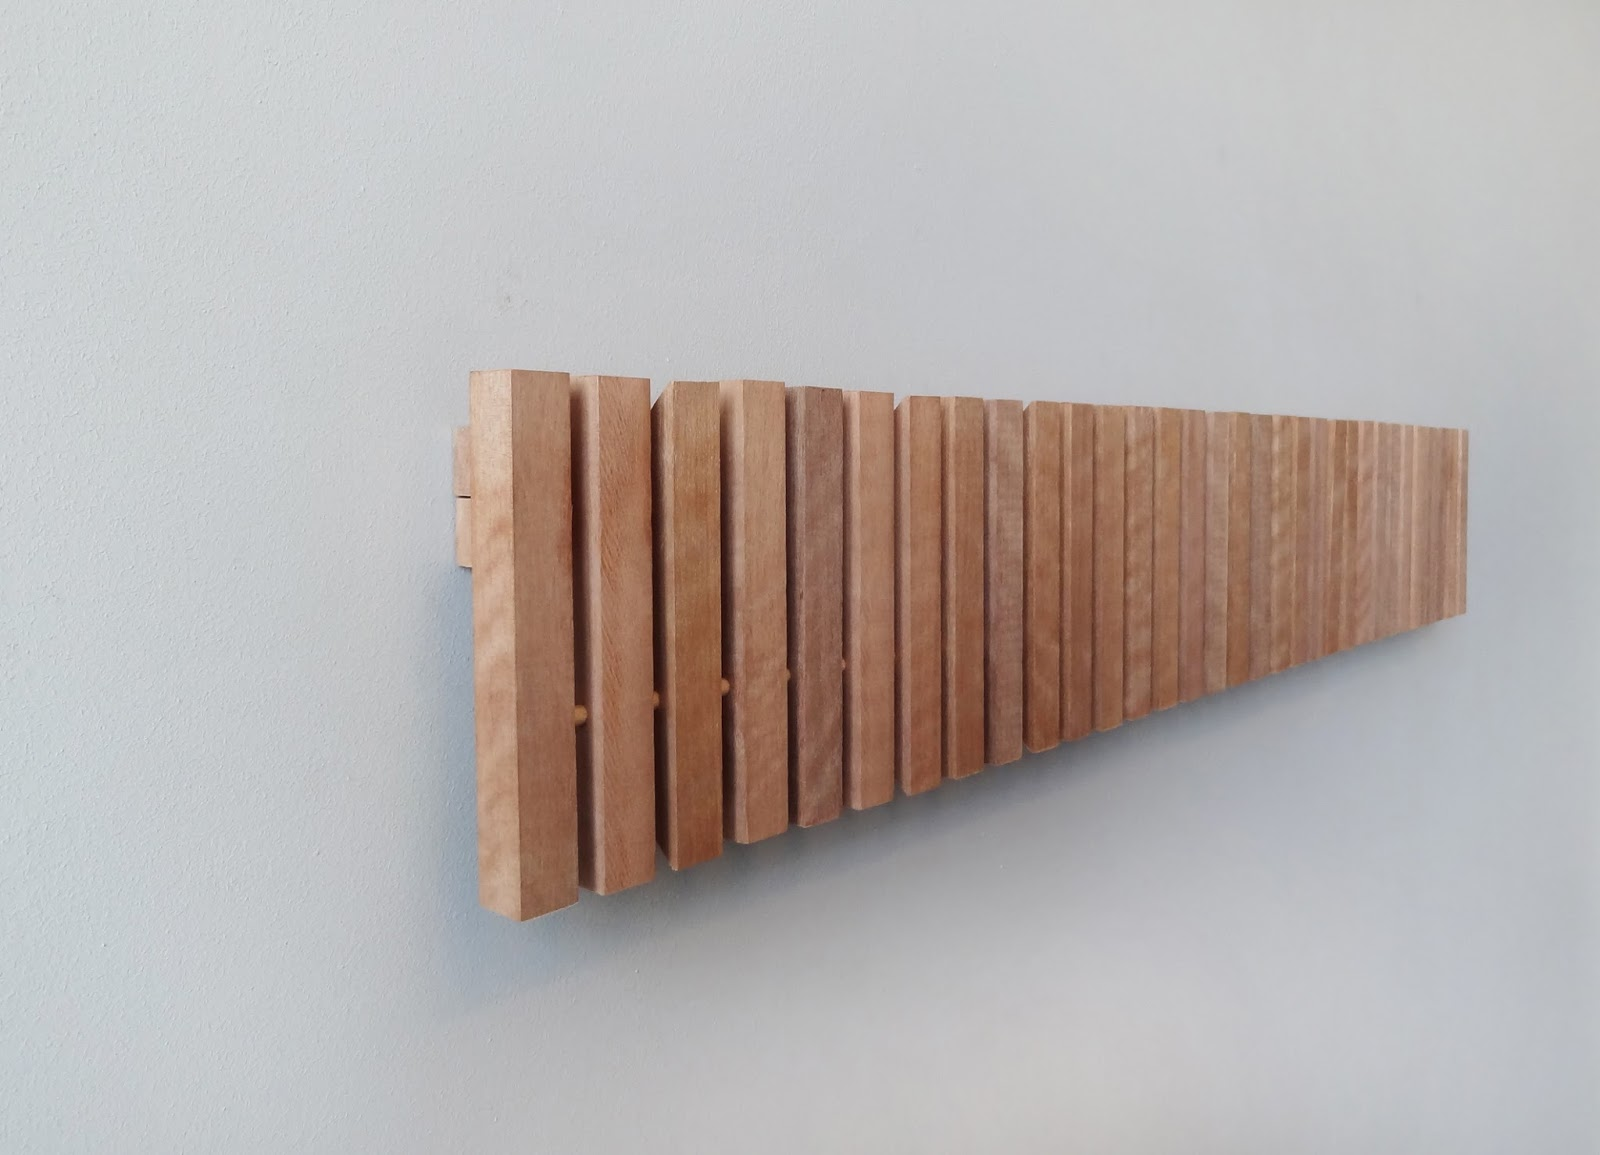 Sumaysuma marimba colgador de pared dise o inteligente for Colgadores de pared